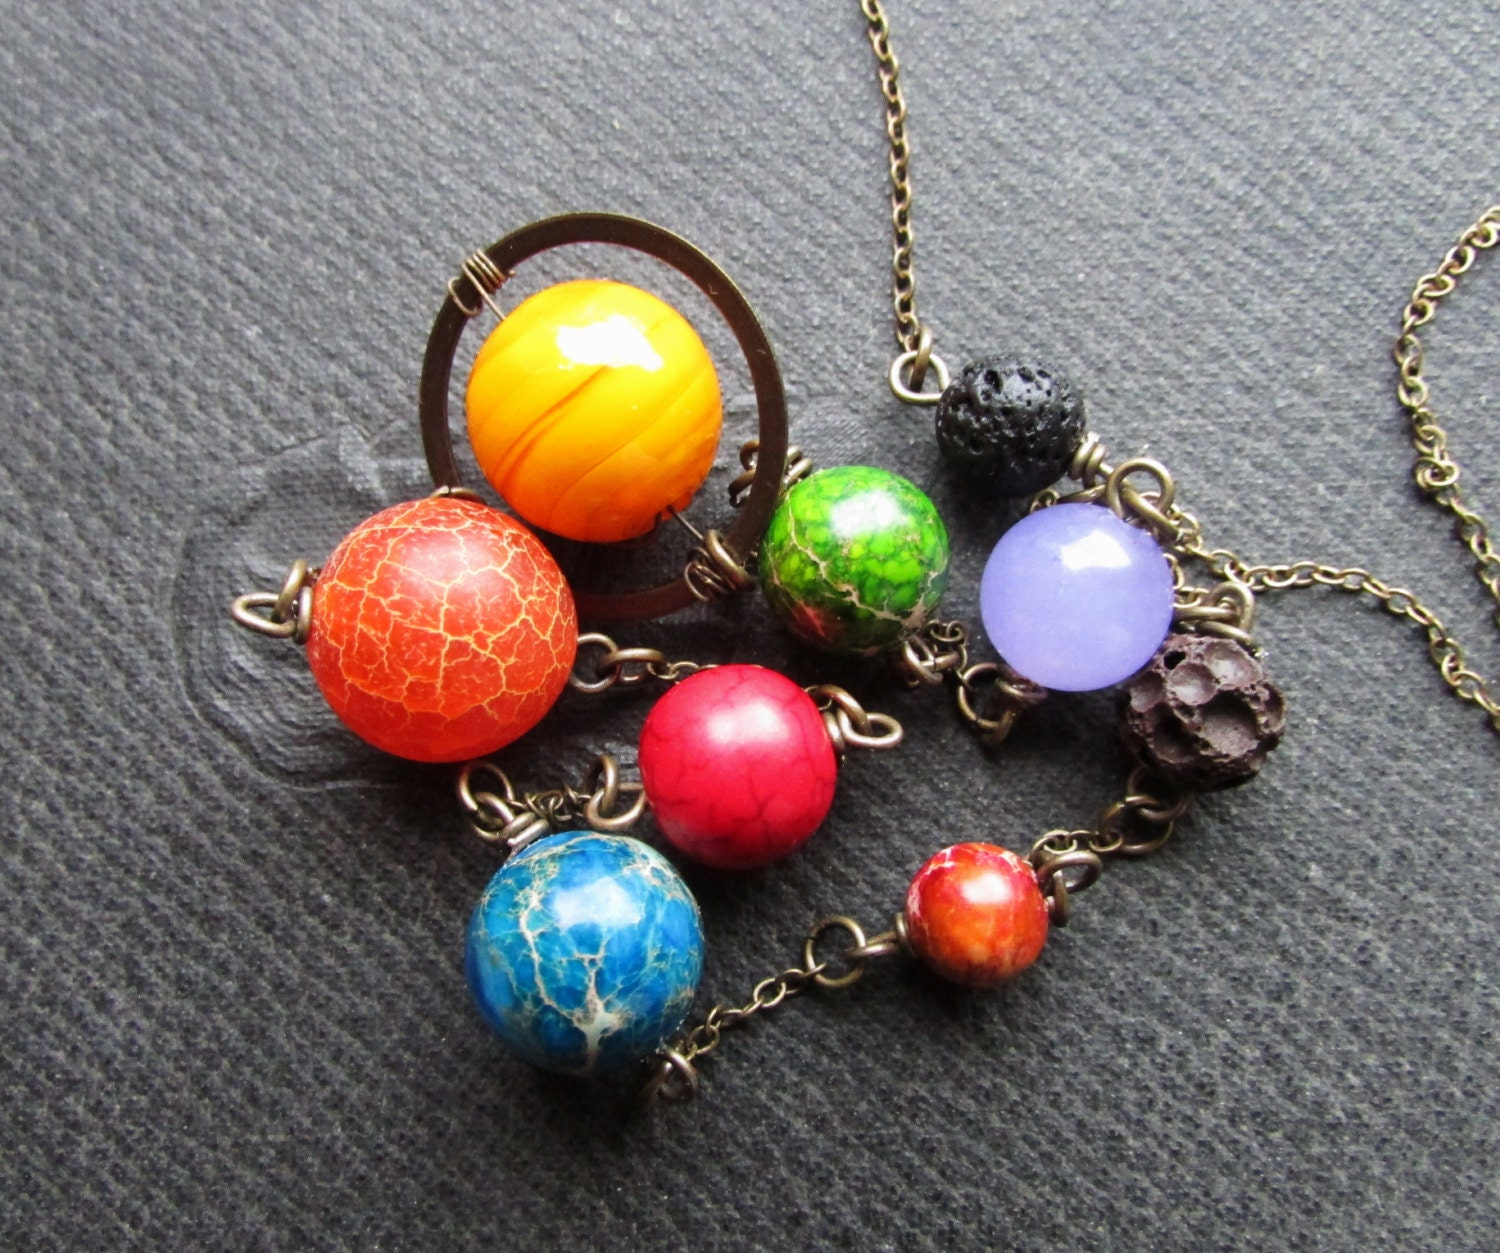 Planet Necklace Planets Necklace Galaxy Necklace Galaxy